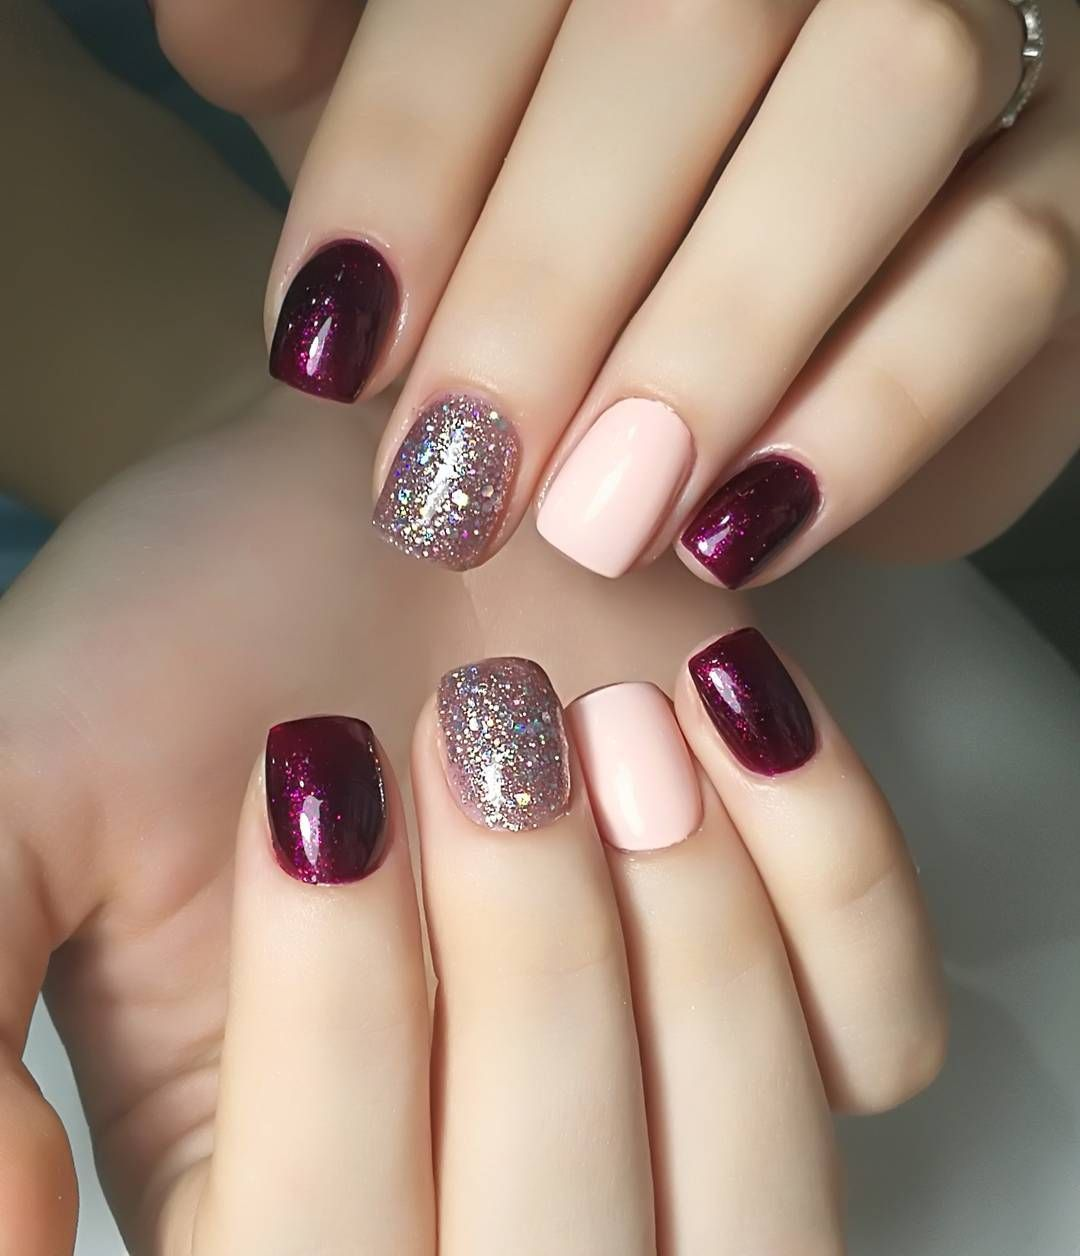 15 Trending Nail Designs That You Will Love! - Best Nail Art | Nails ...